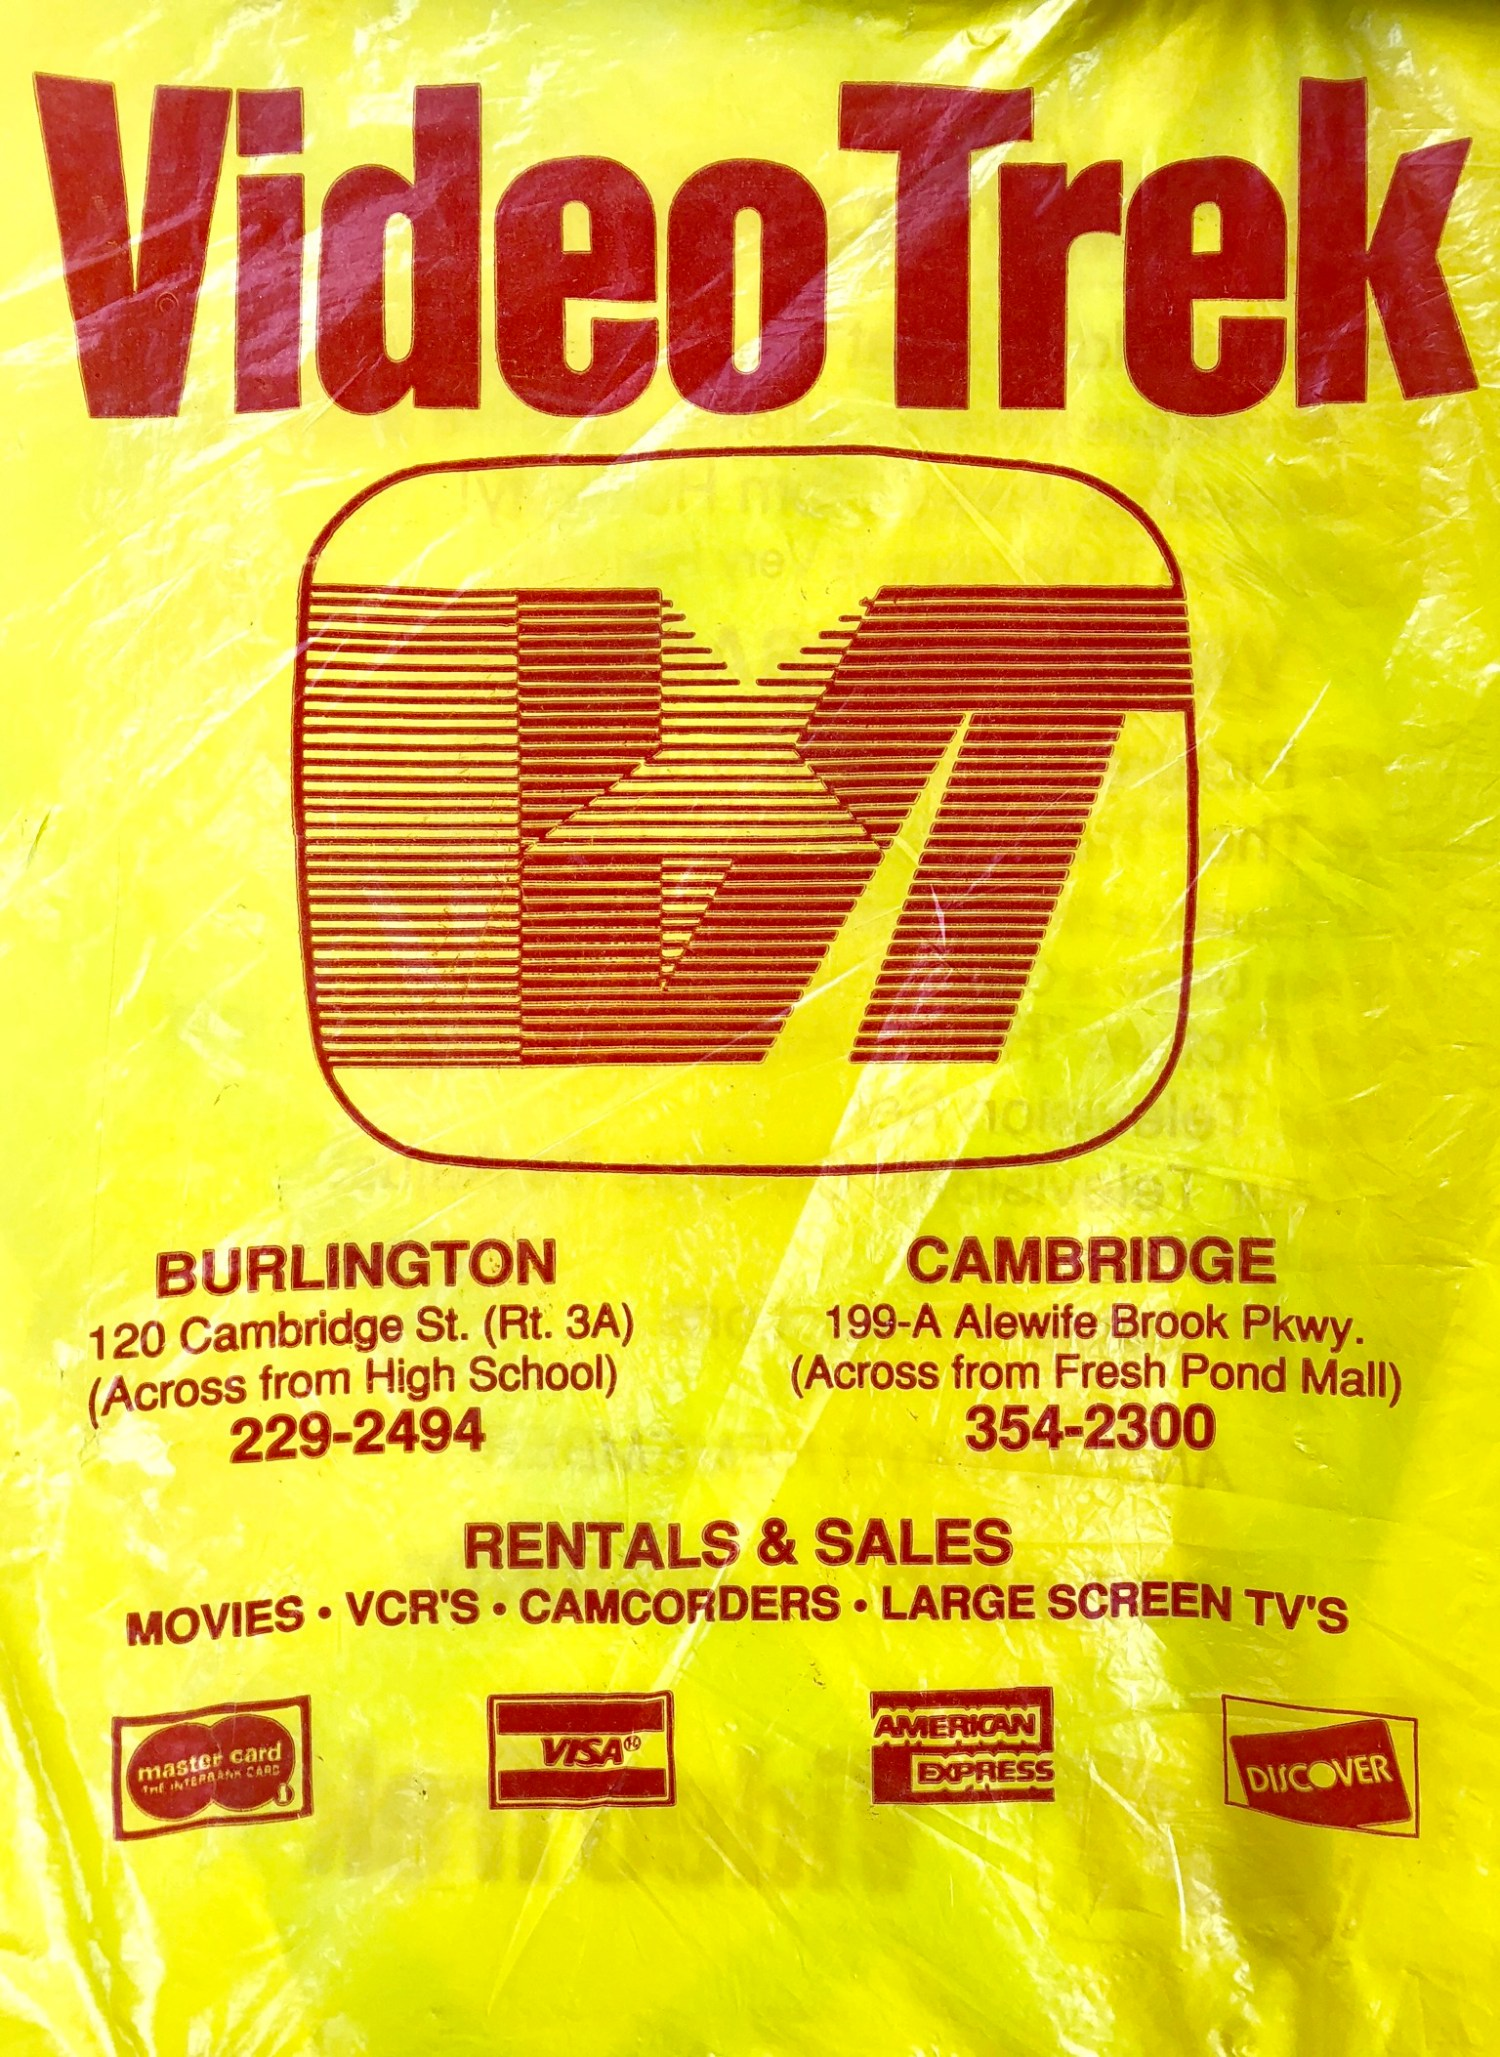 Video Trek bag, Burlington MA. Photo credit: Cheryl Hayes